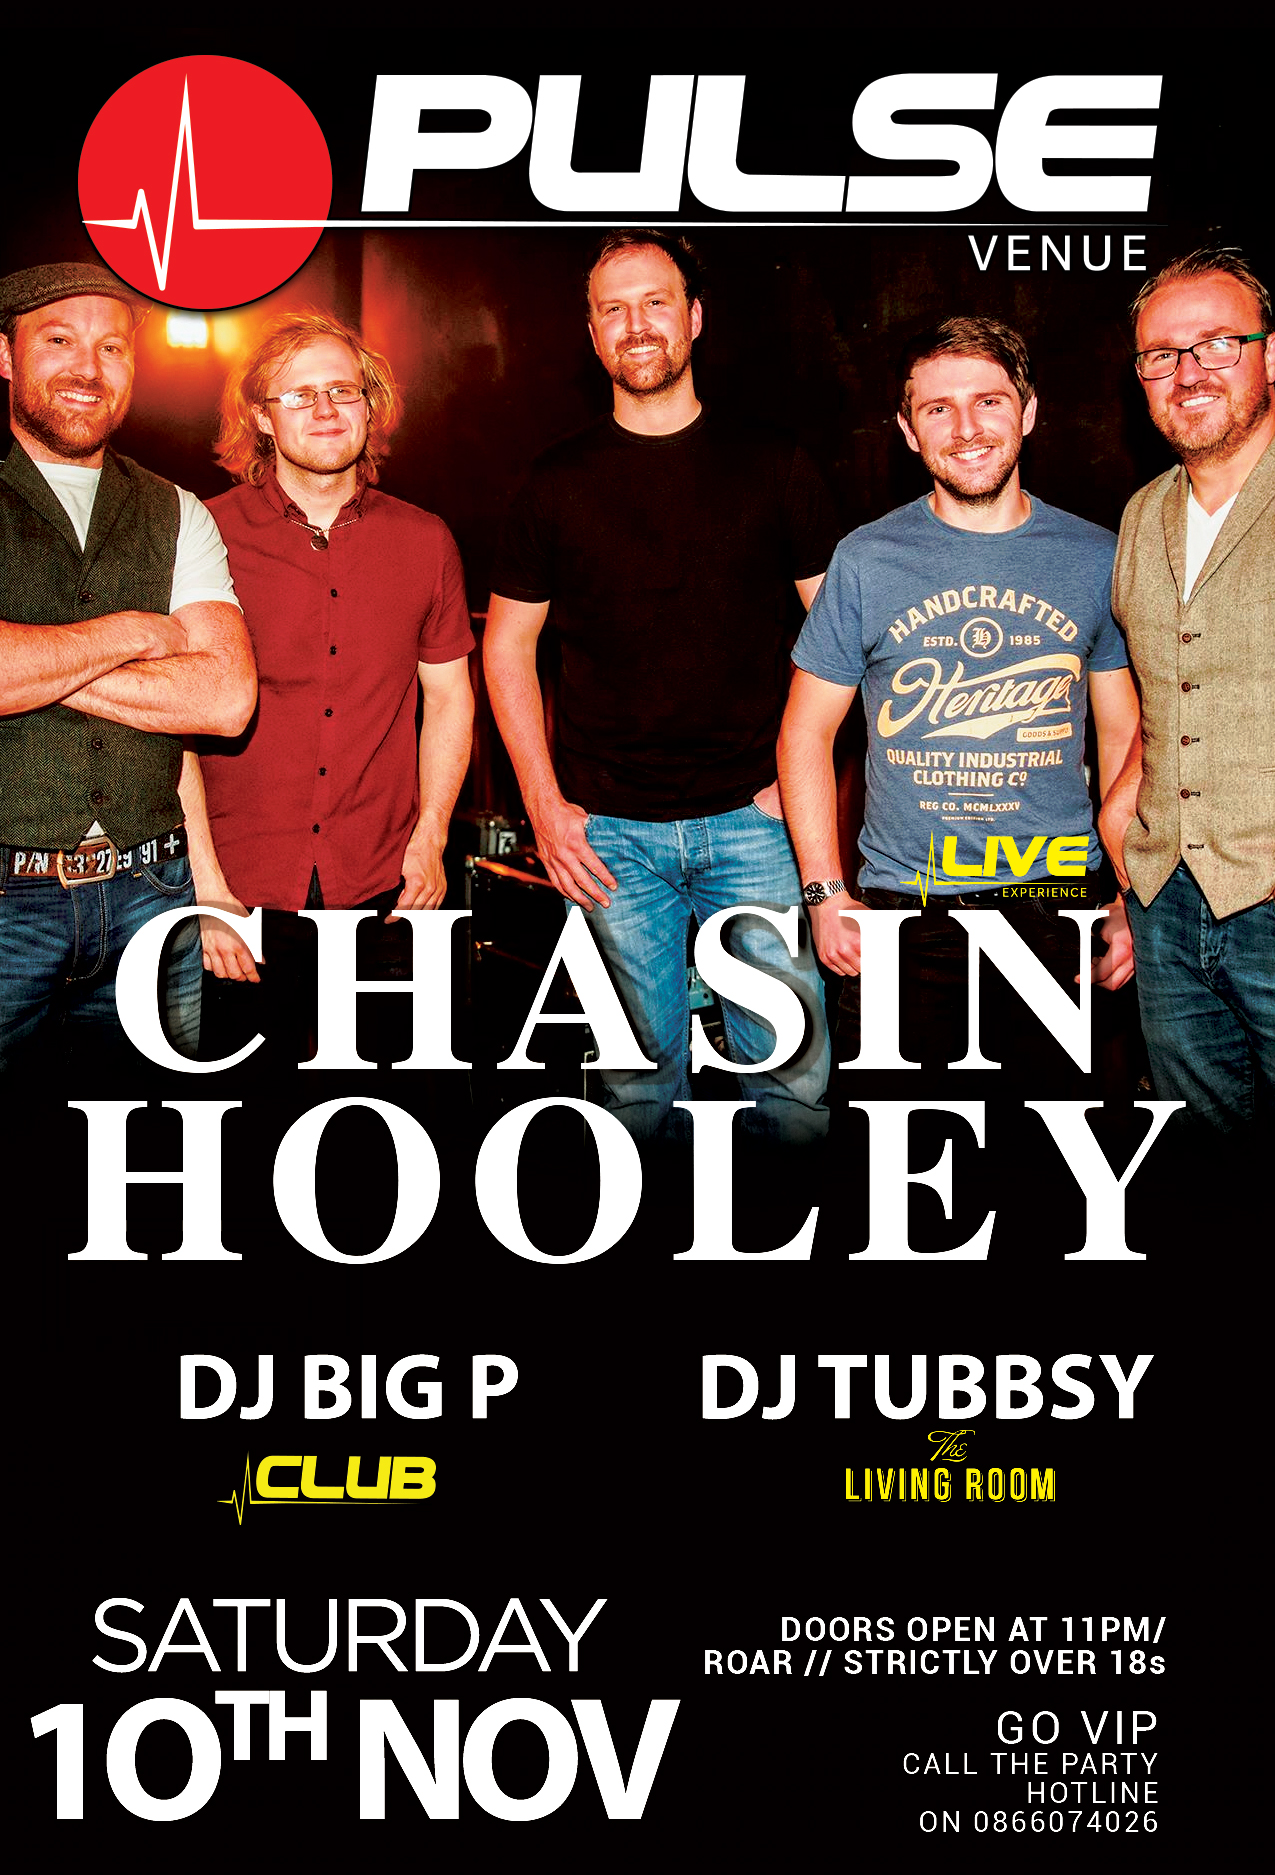 pulse-venue---CHASIN-HOOLEY---big-p---tubbsy---nov-10-2018.jpg